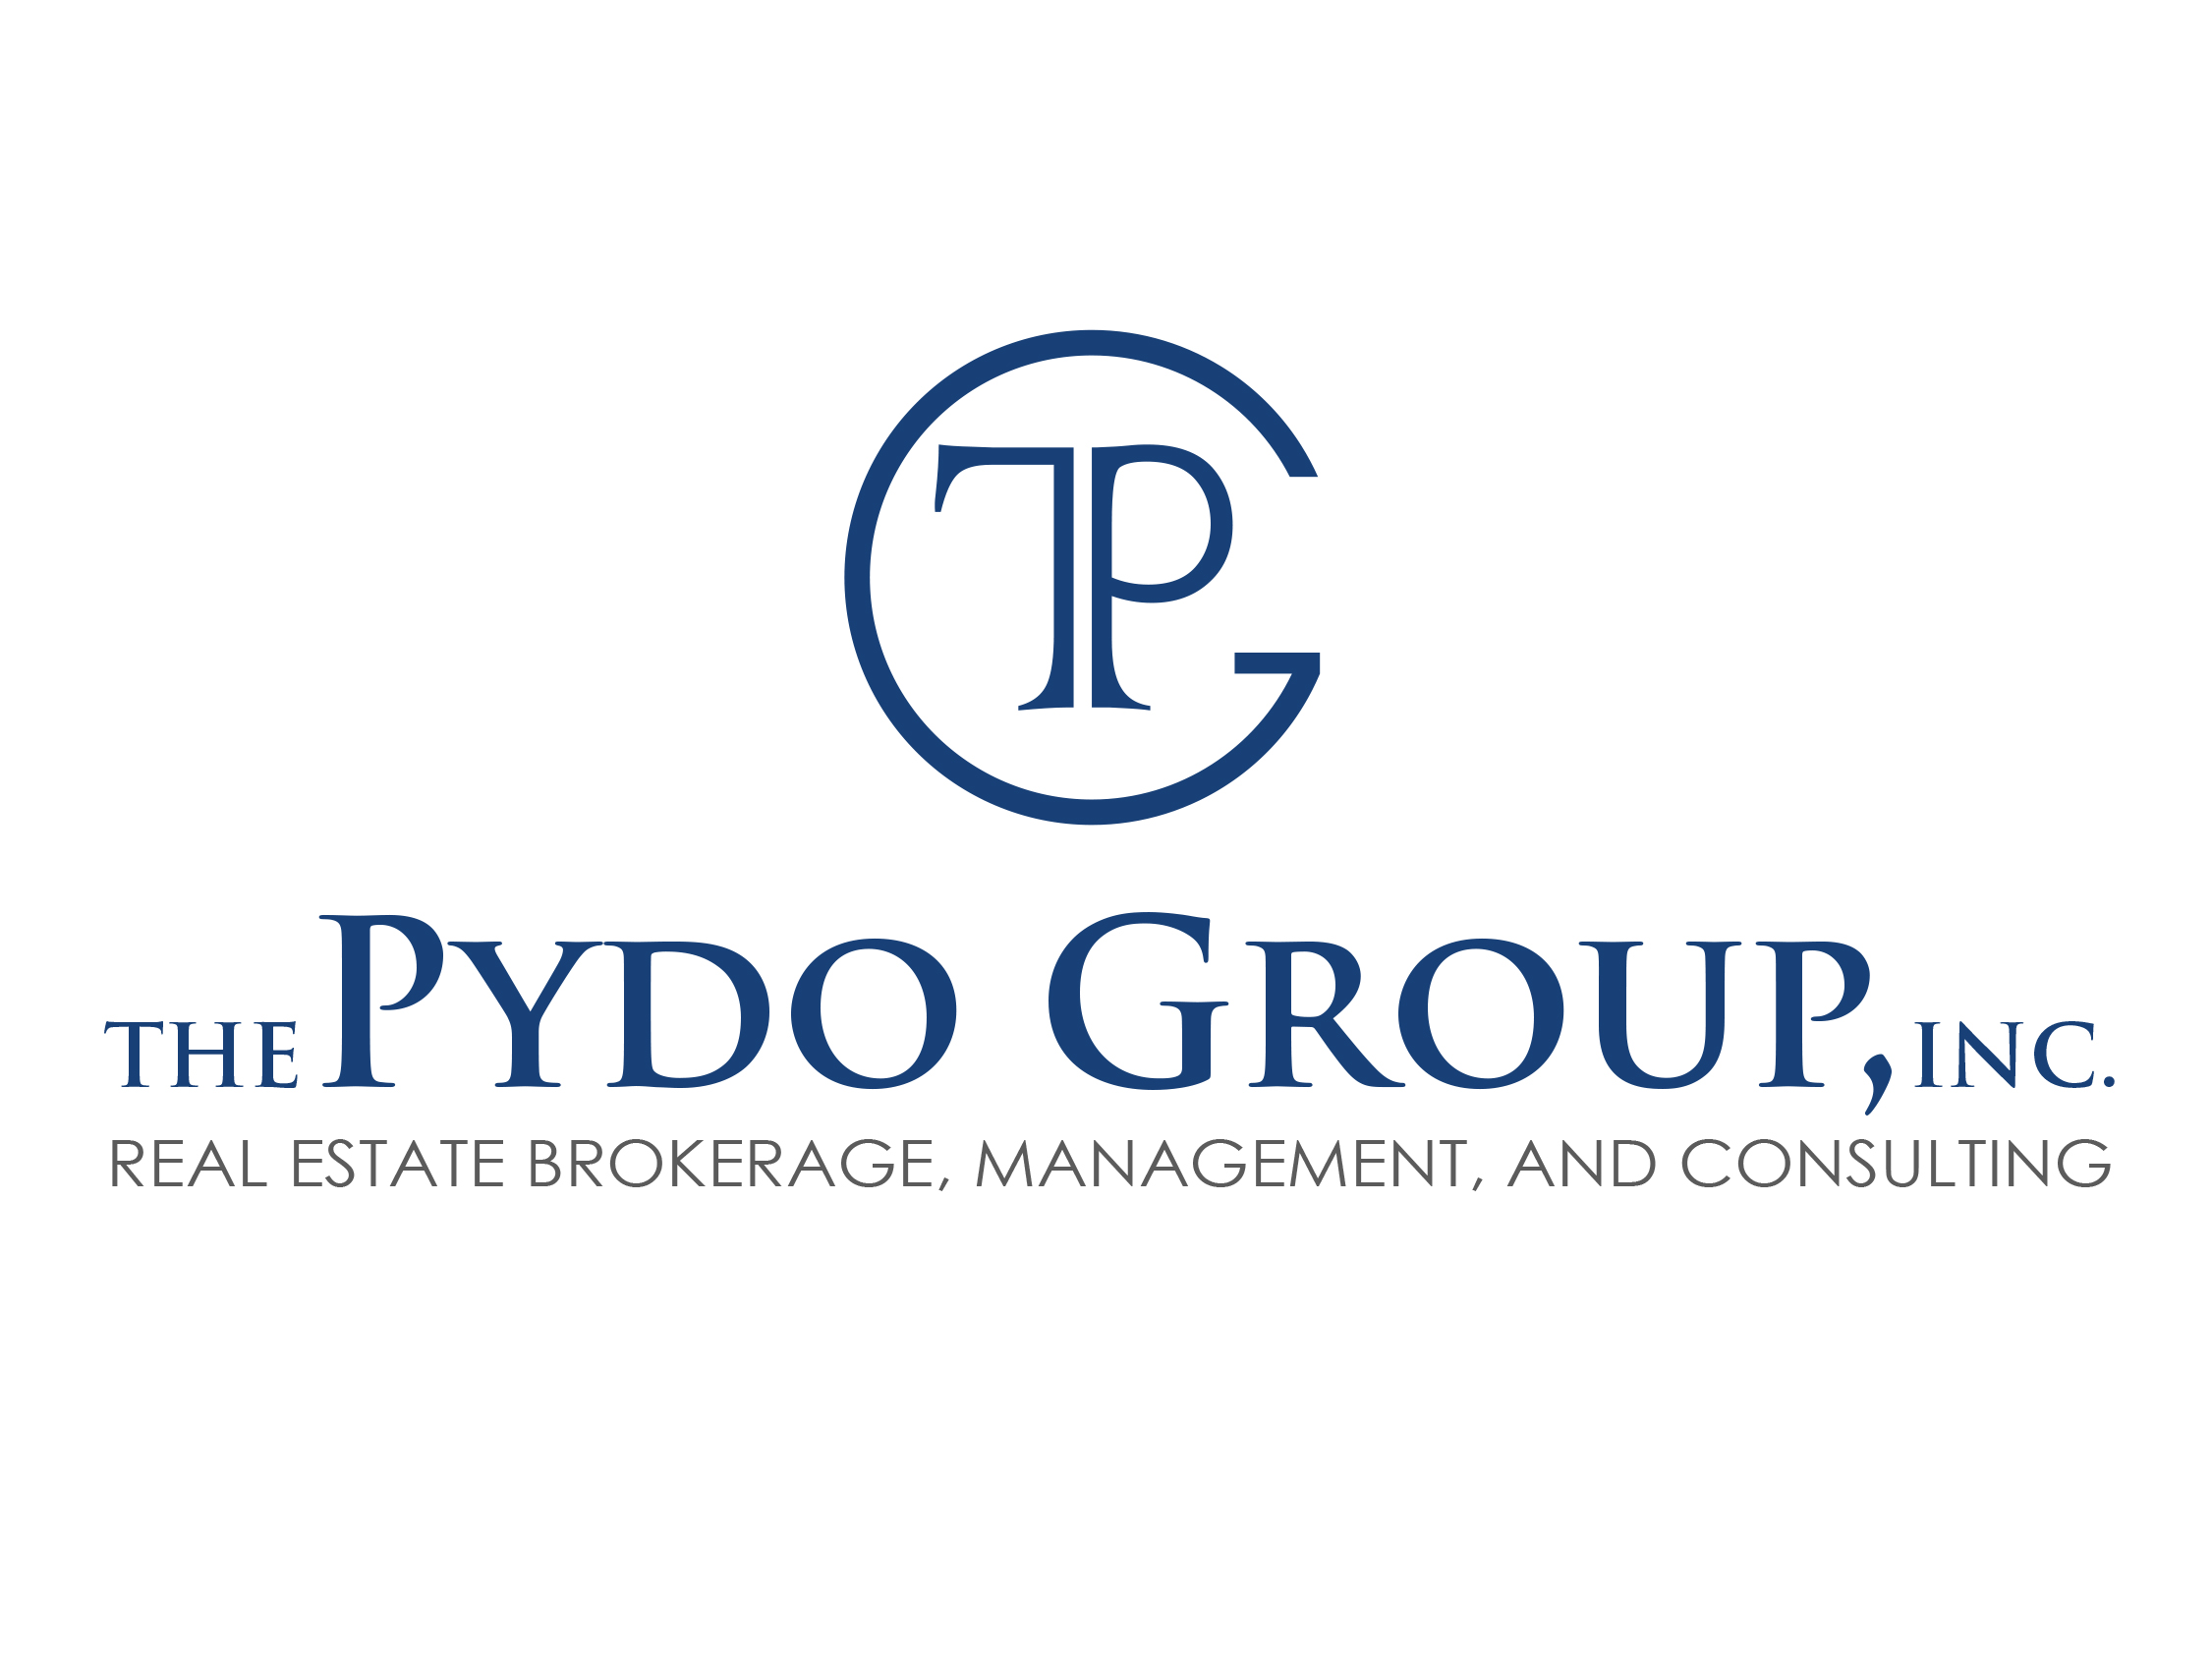 the pydo group logo